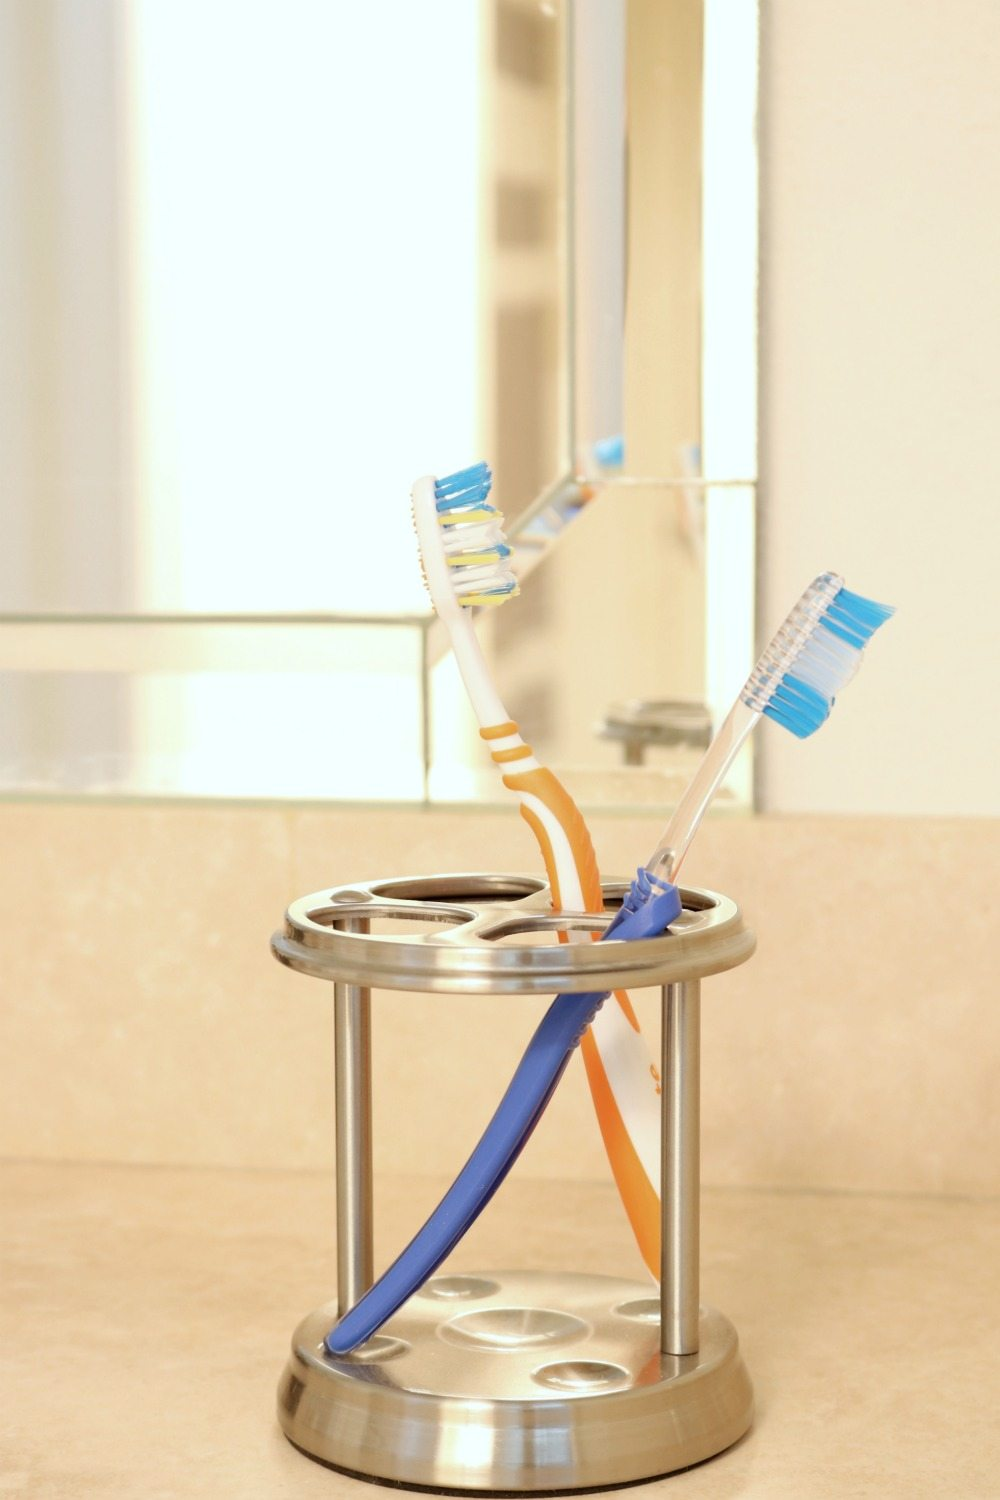 Have a place for the guest to put their toothbrush but keep it simple and easy to clean